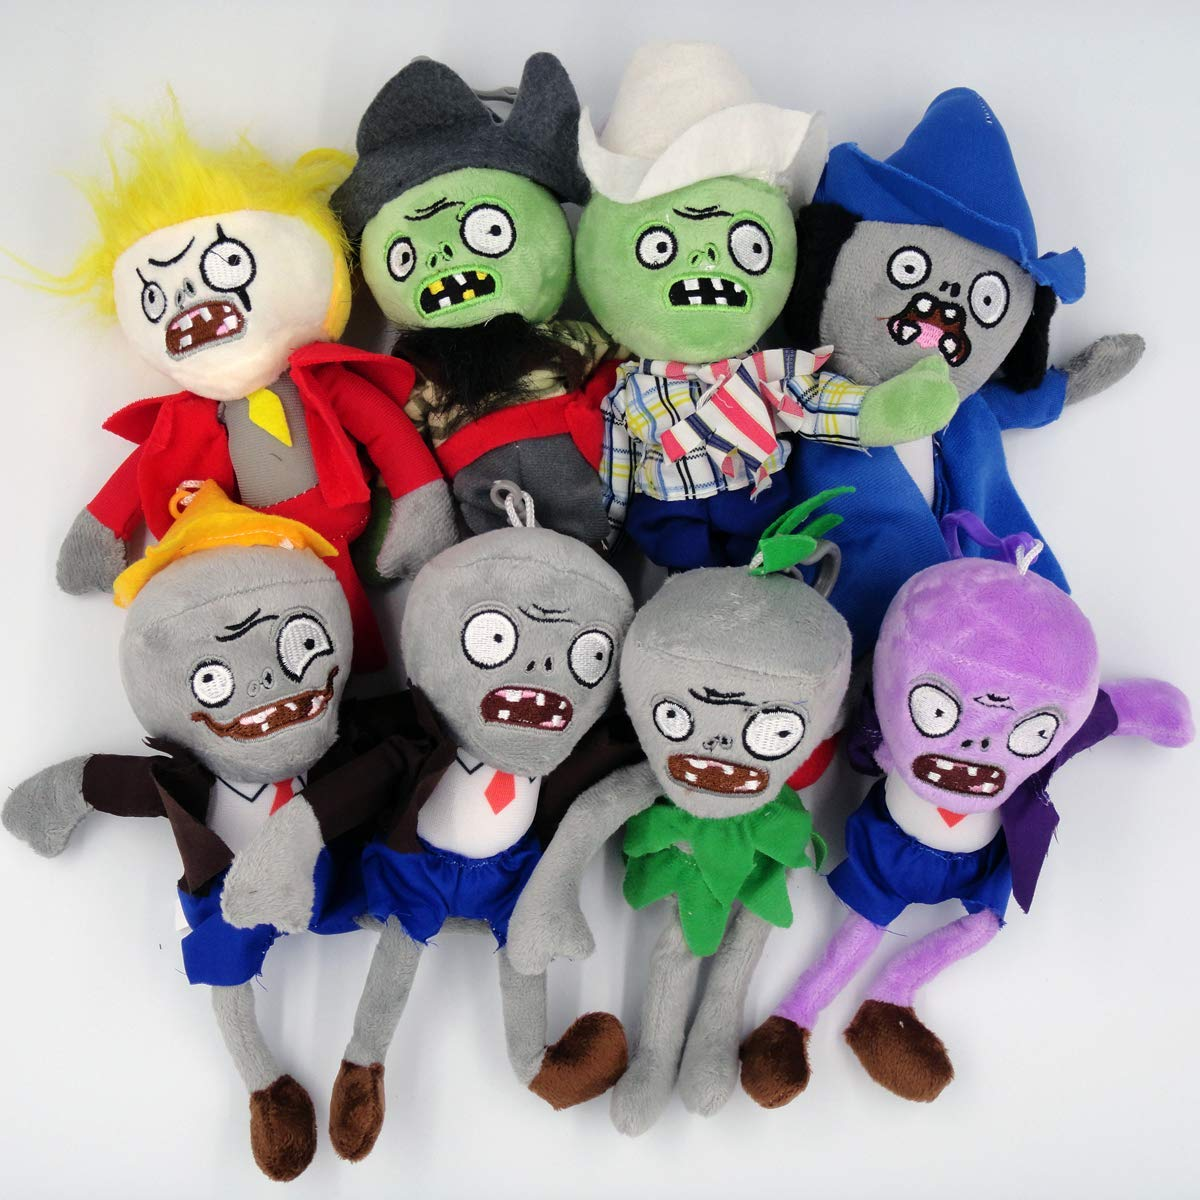 Plants vs Zombies Figure PVZ Plush Toys (Set of 8),Mini Size 20cm with Keychain by sagusi